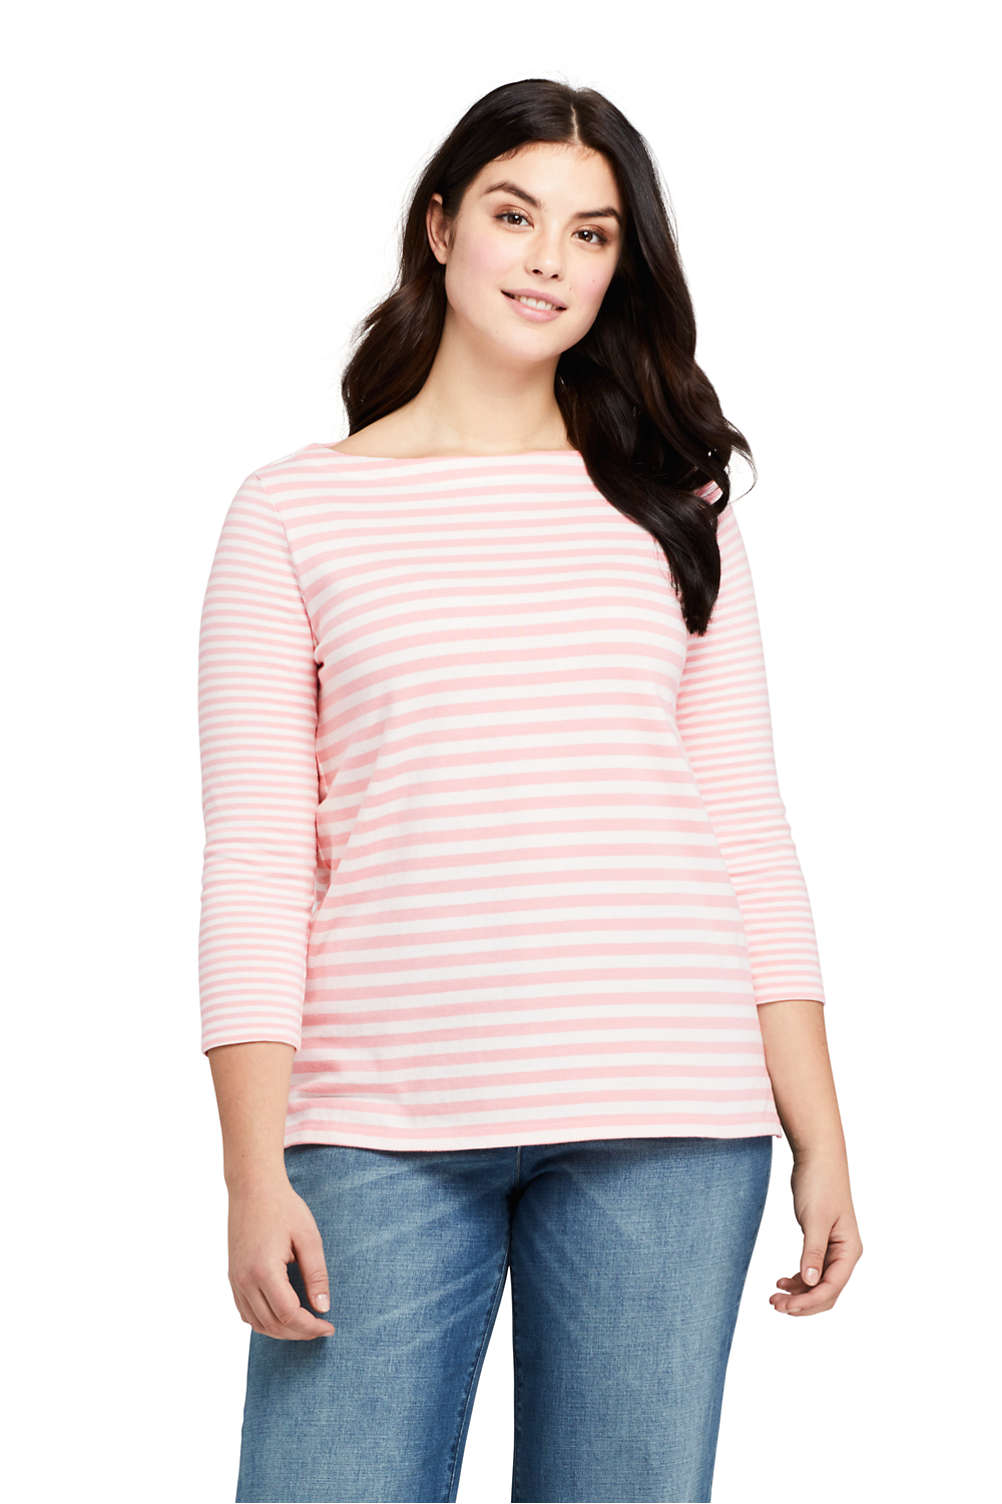 ce1919a47eb Women s Plus Size 3 4 Sleeve Stripe Boatneck Top from Lands  End